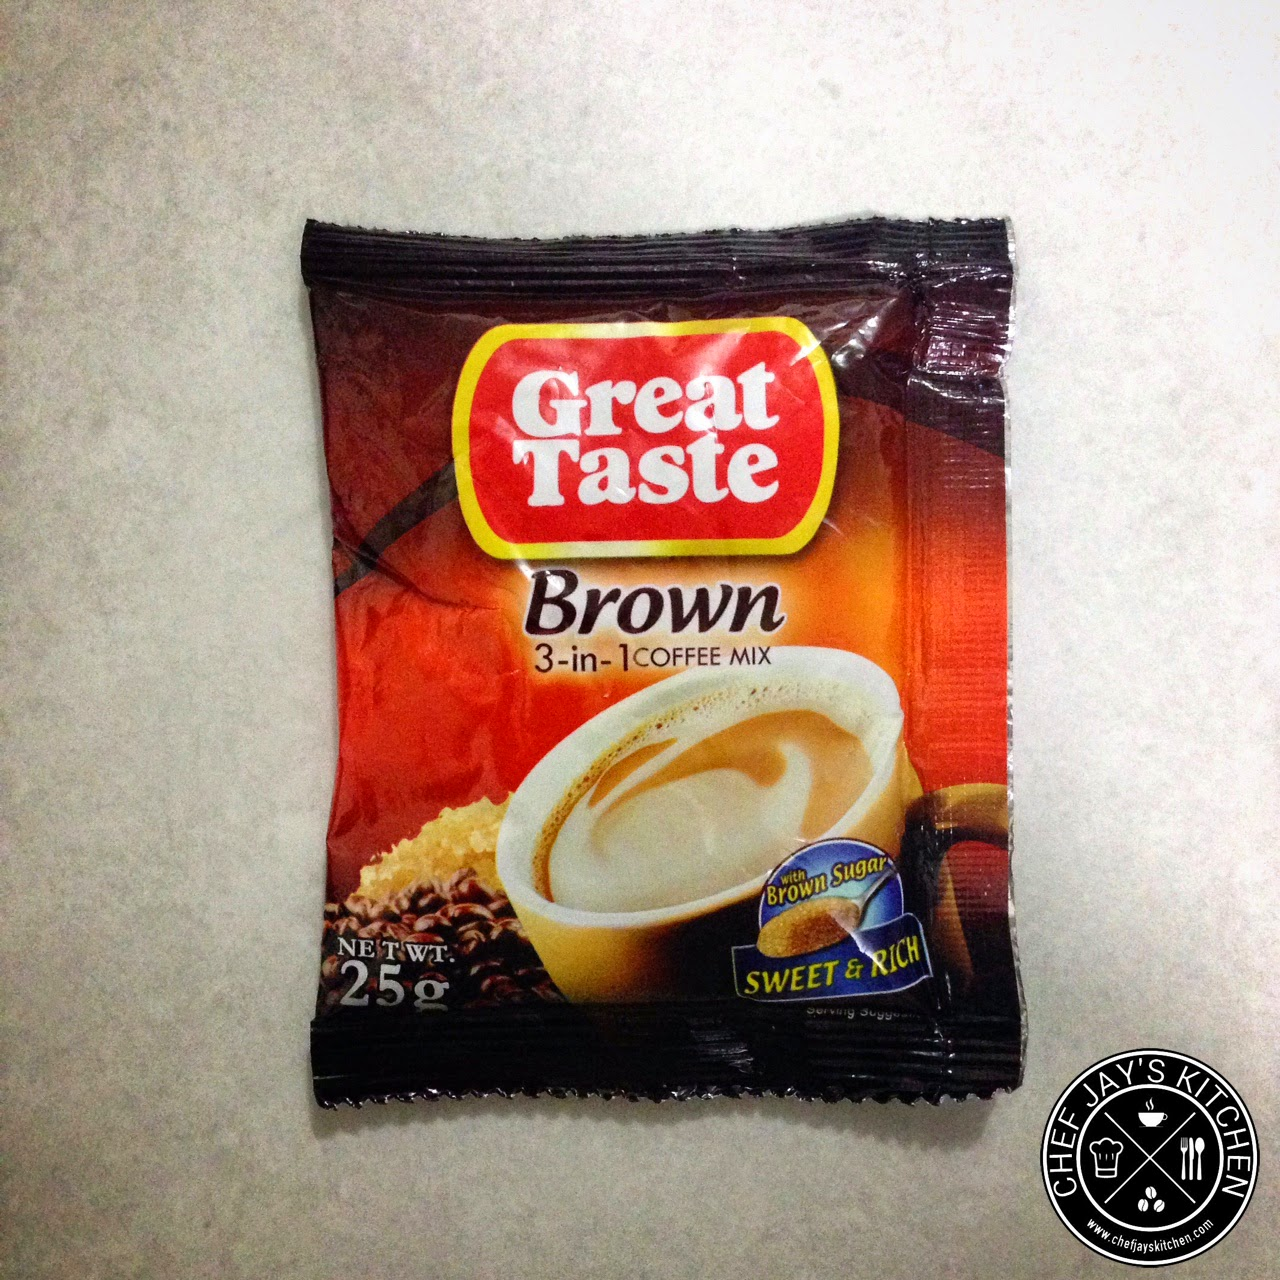 Brown Coffee Brands in the Philippines Review - Great Taste Brown